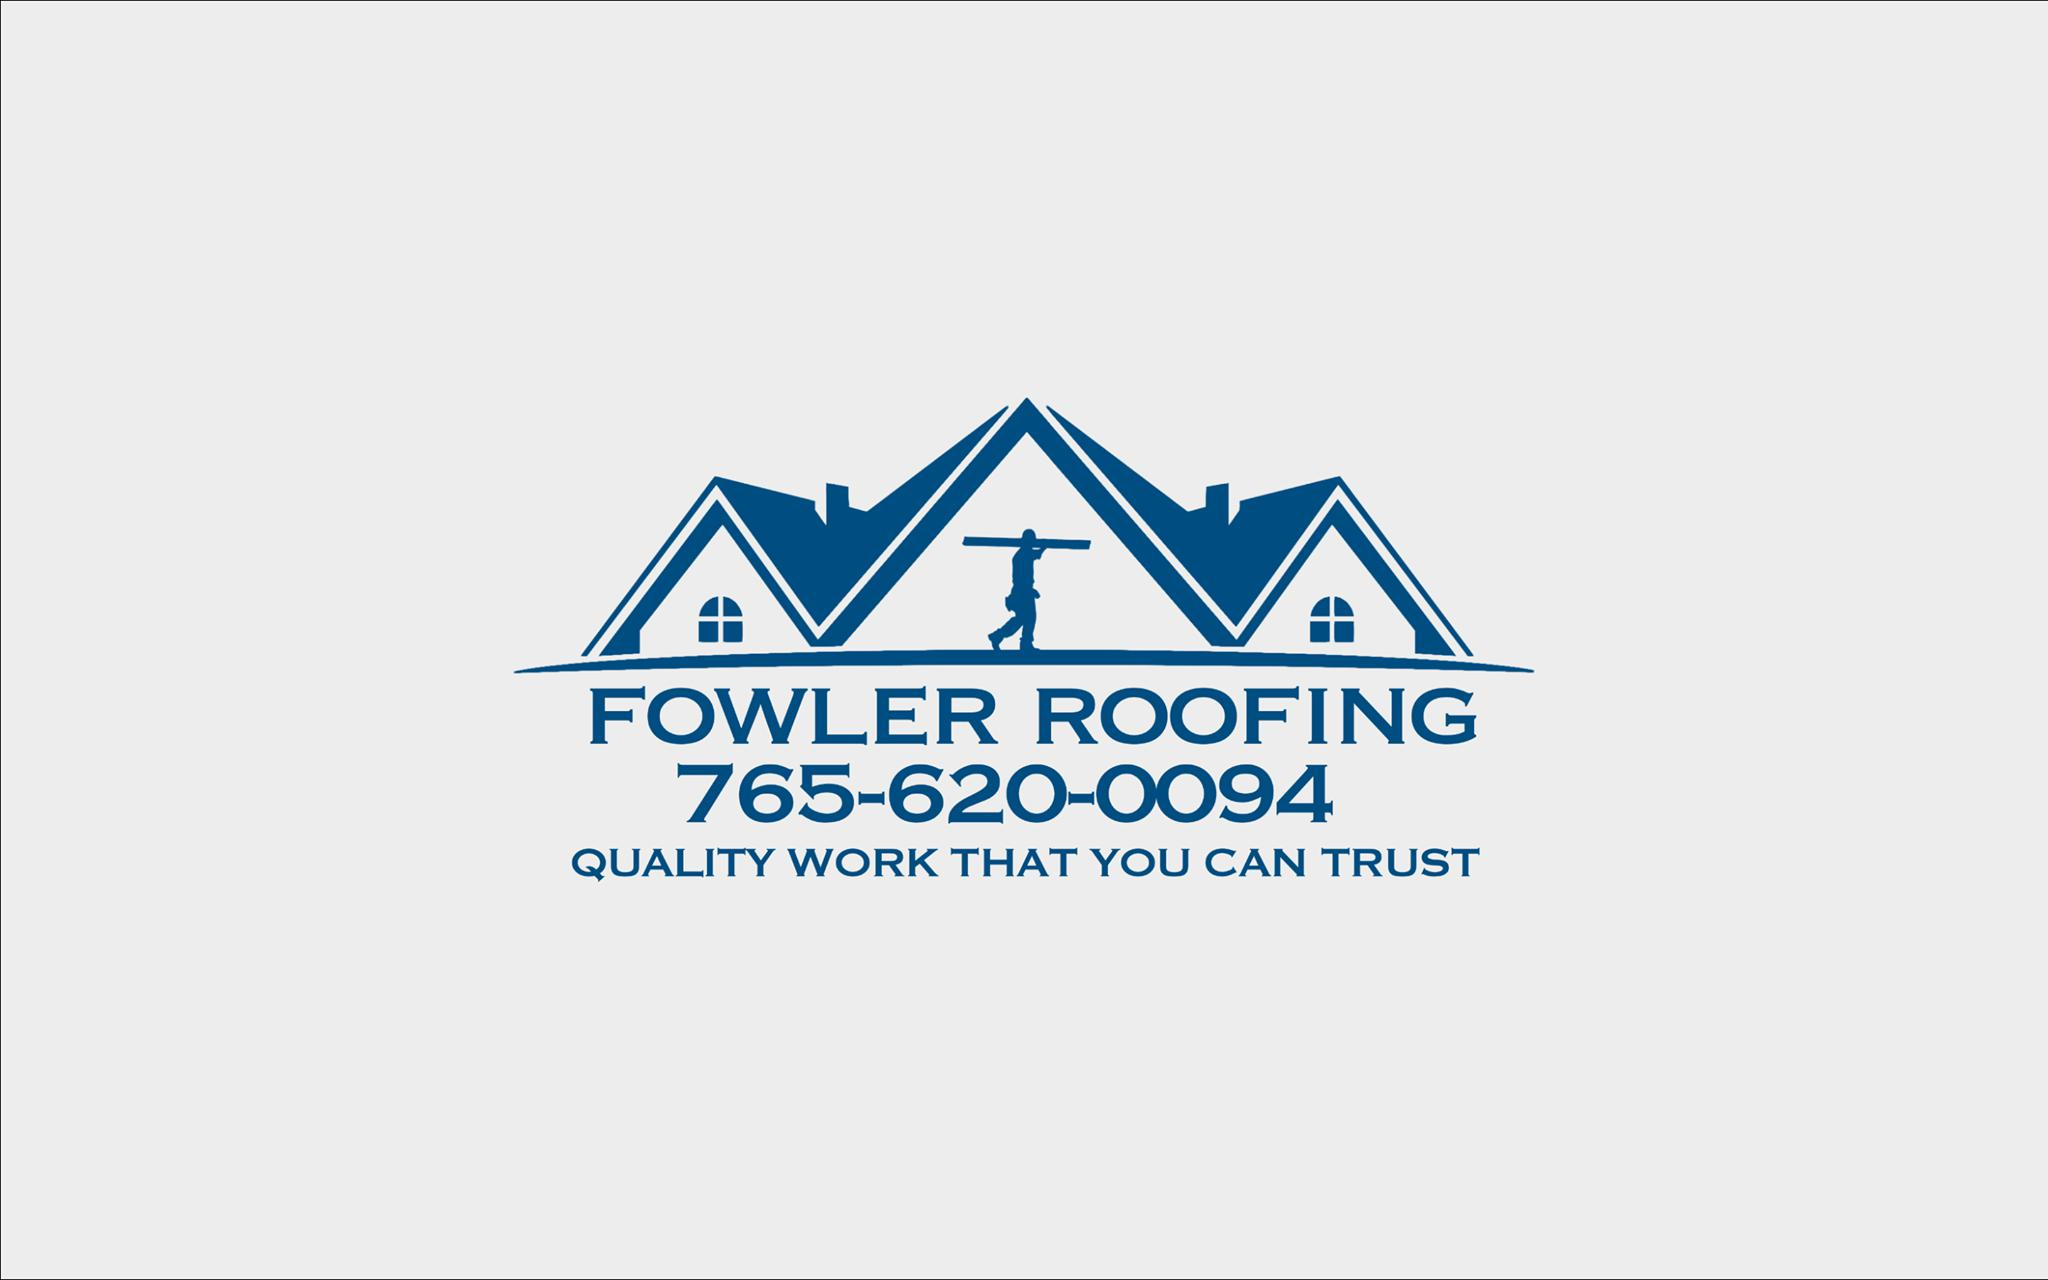 Fowler Roofing Logo